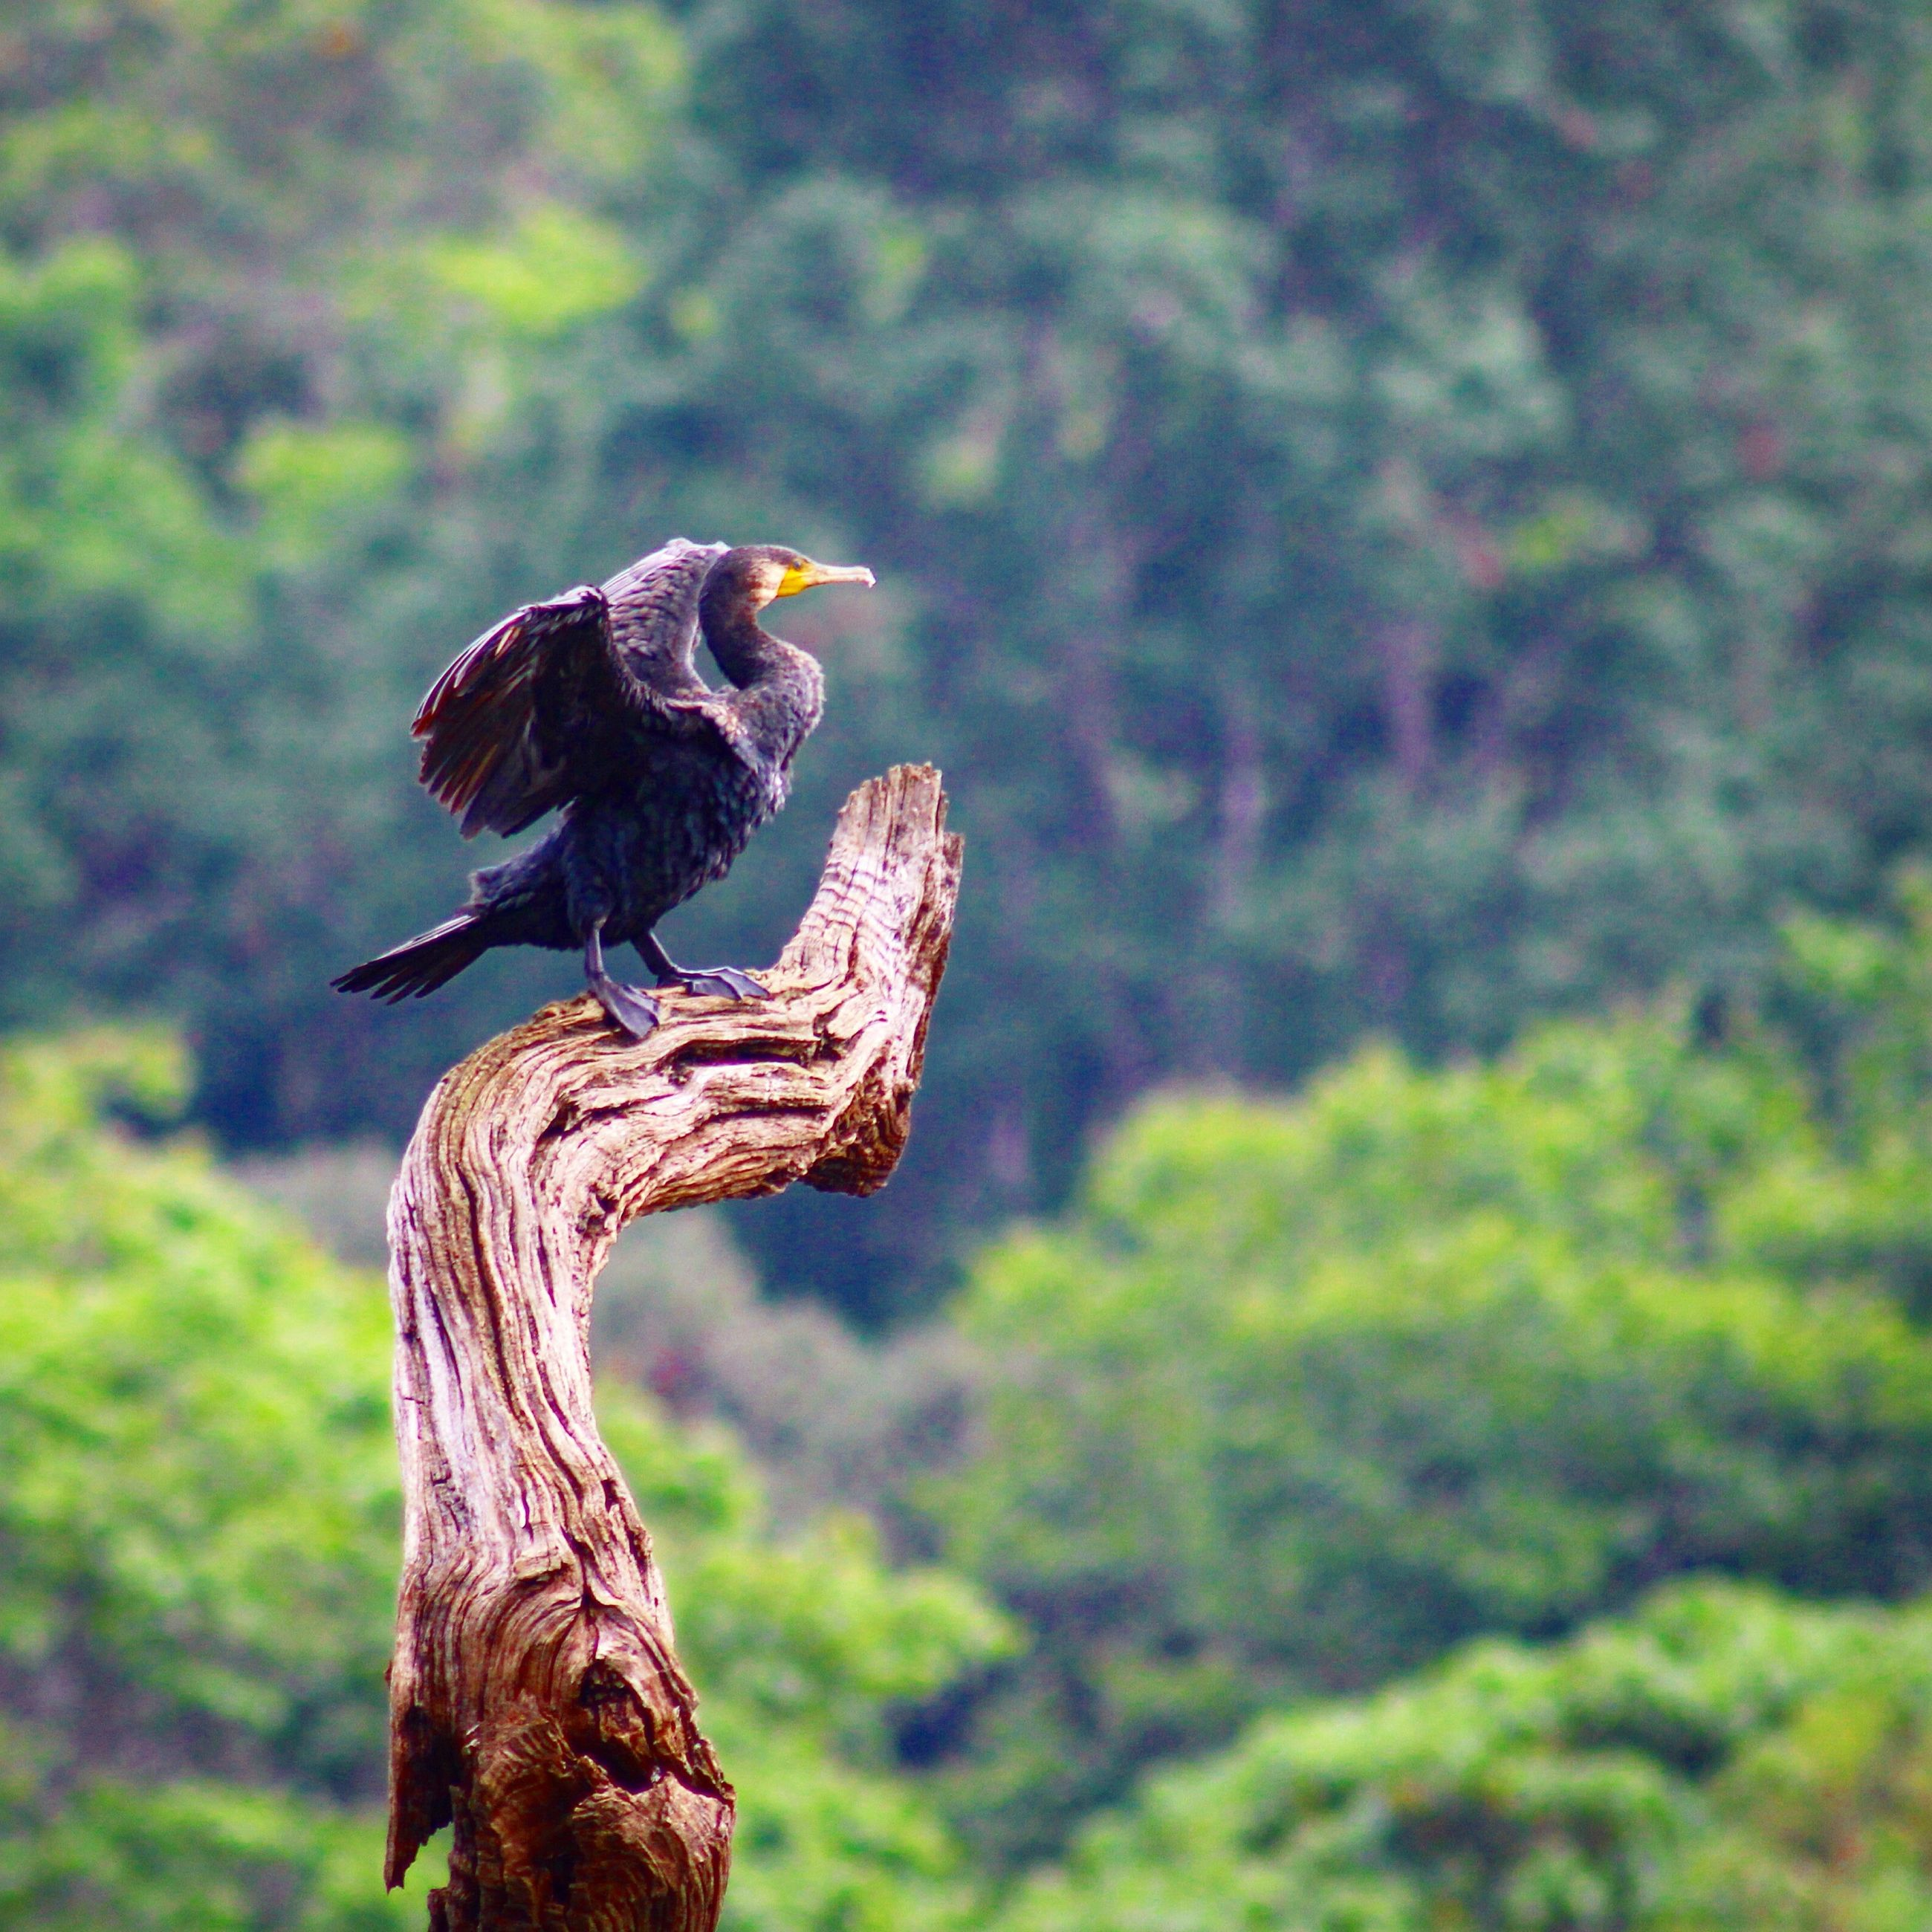 animal themes, animals in the wild, wildlife, one animal, focus on foreground, bird, perching, side view, nature, full length, close-up, day, outdoors, tree, lizard, branch, no people, reptile, two animals, wood - material